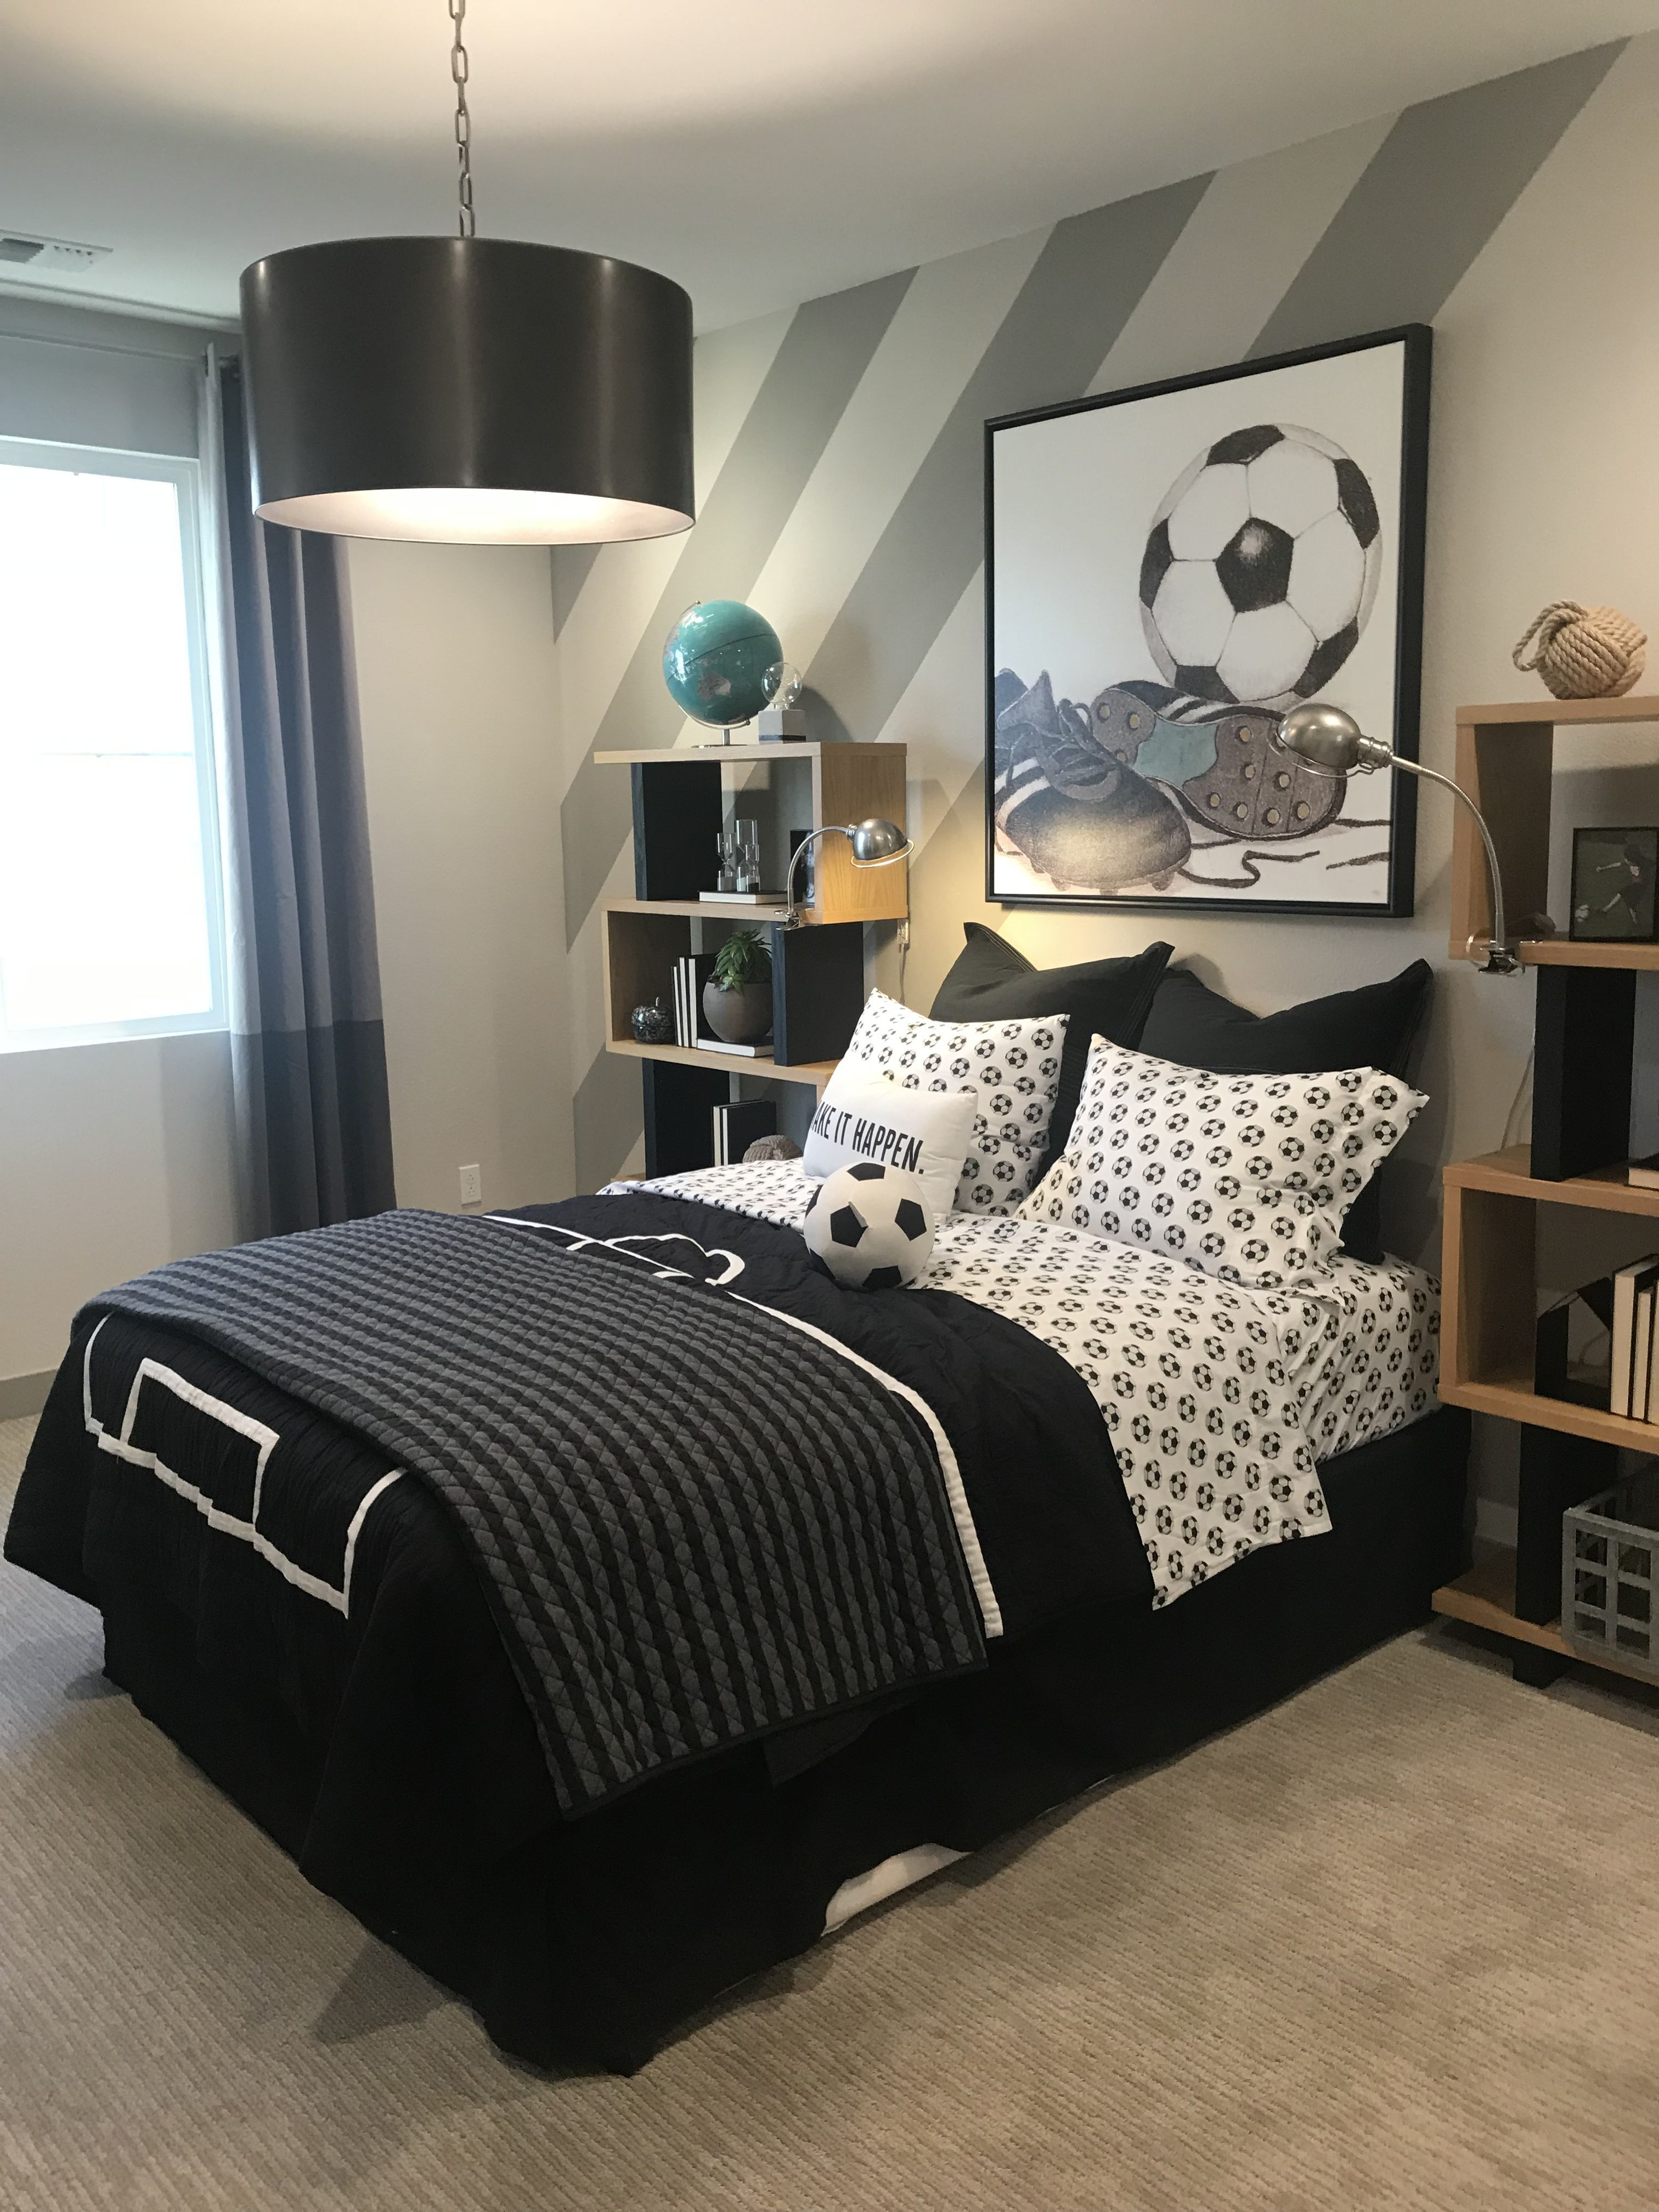 25 Marvelous Boys Bedroom Ideas That Will Inspire You Cool